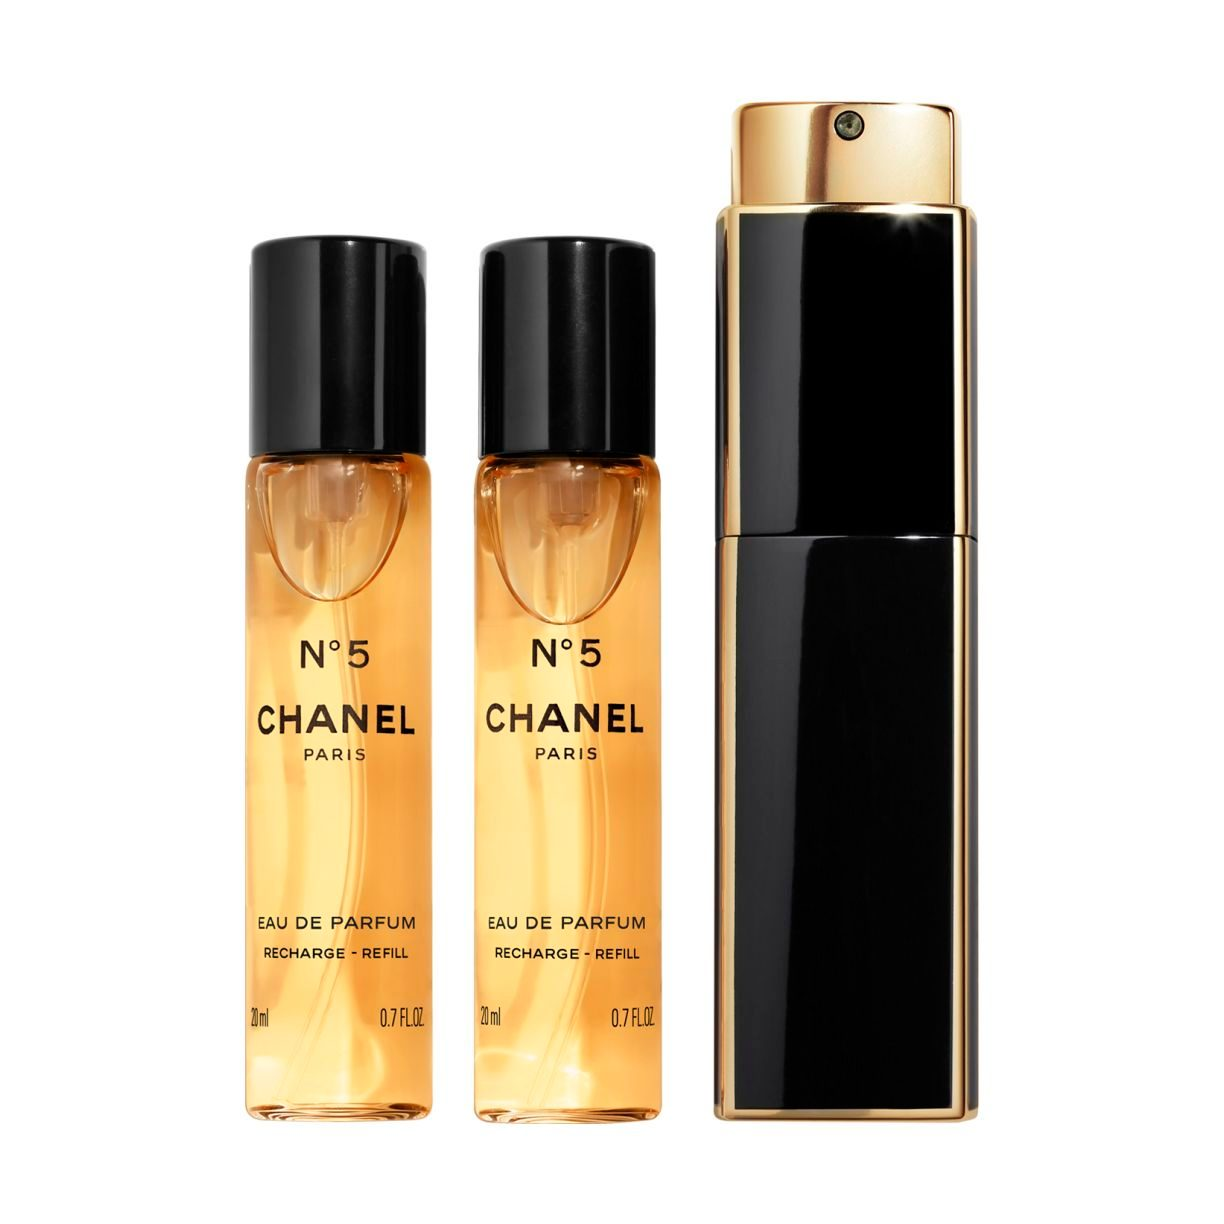 N°5 EAU DE PARFUM PURSE SPRAY 3x20ml